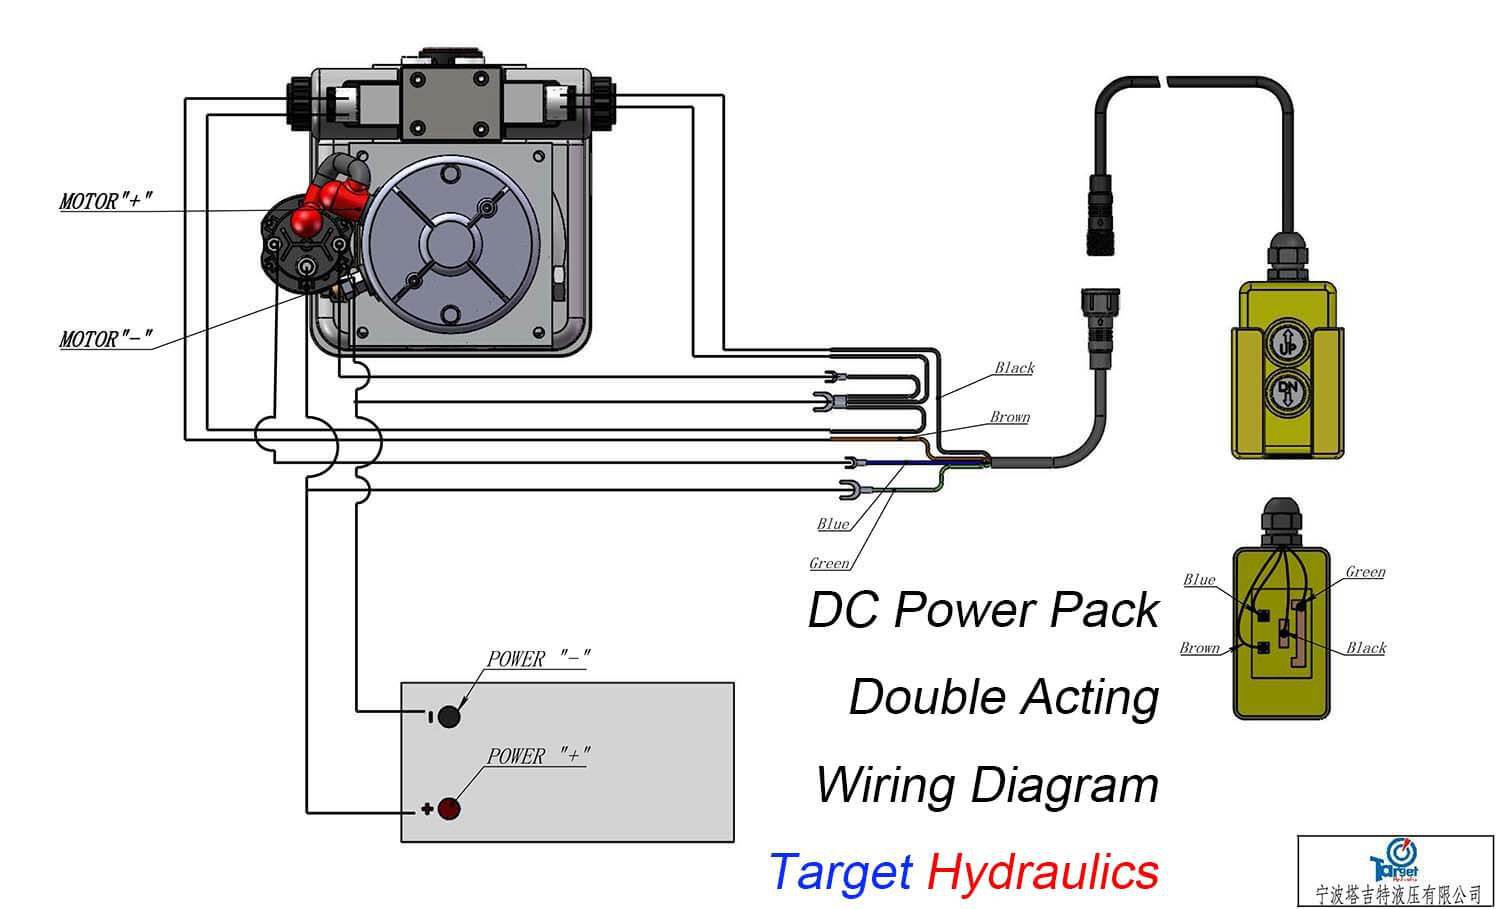 12v Hydraulic Power Pack Wiring Diagram Download